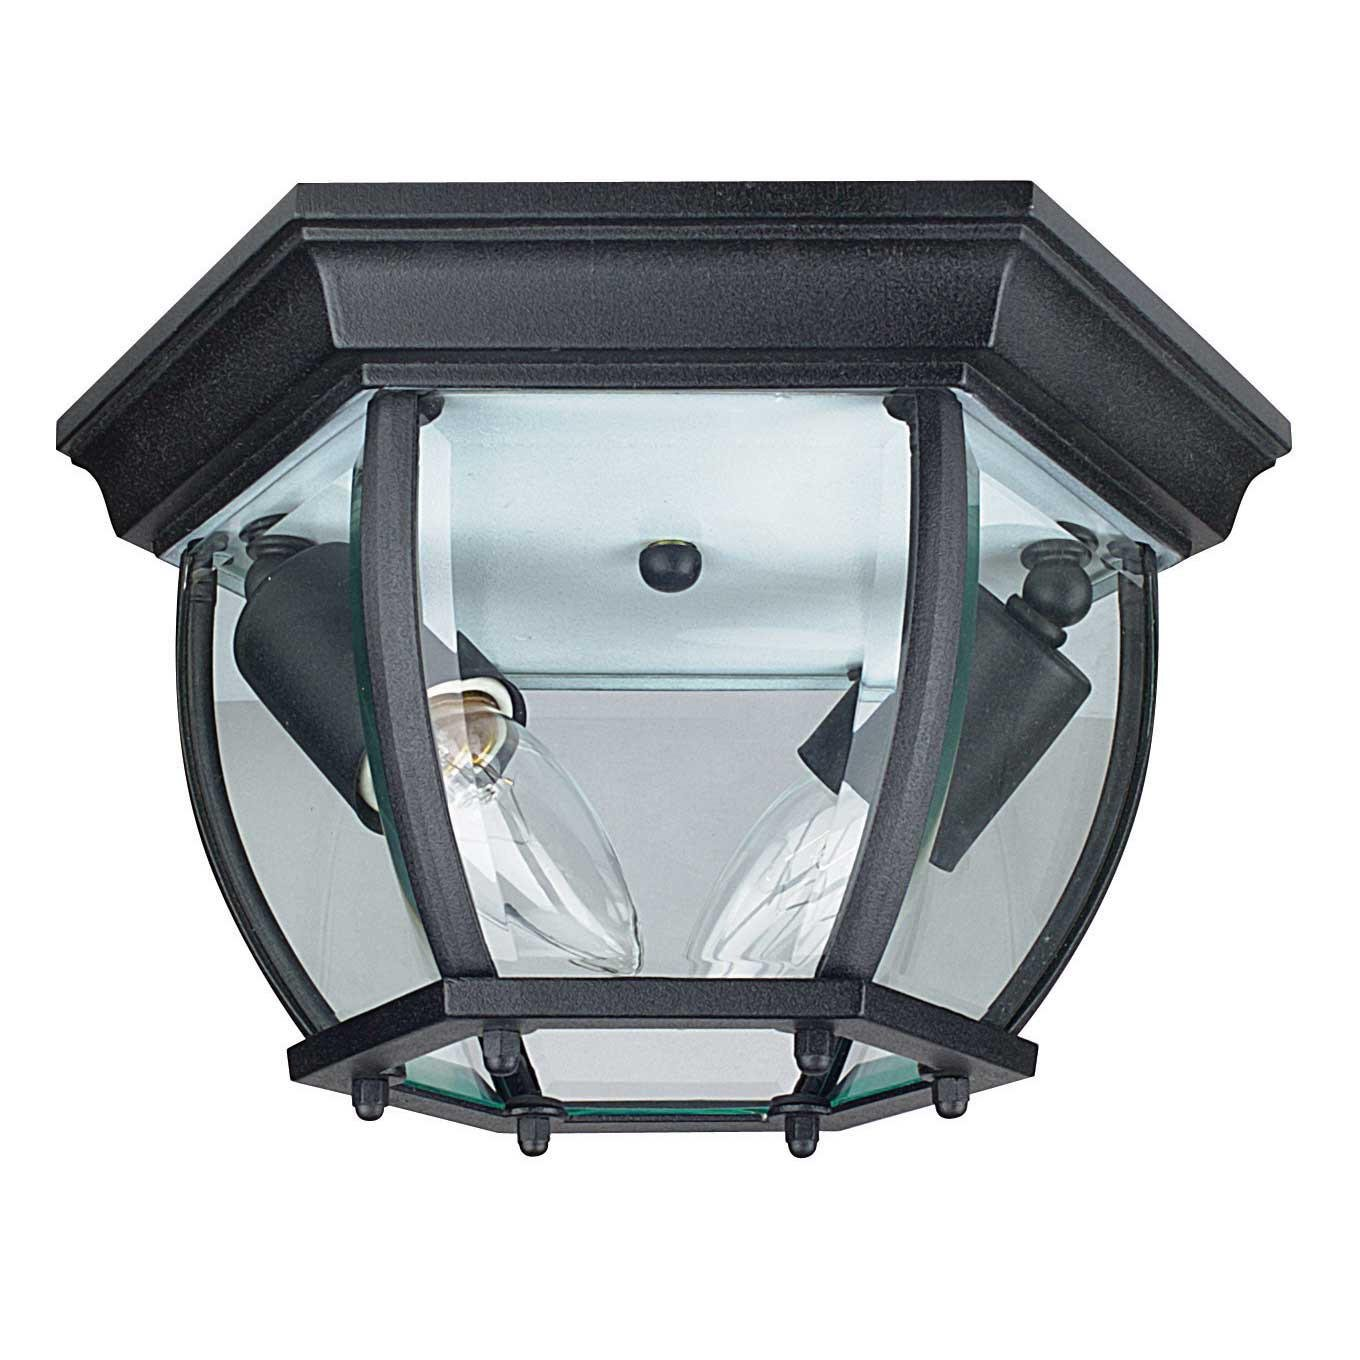 Sunset Lighting F7898-31 Outdoor Flush Mount with Clear Beveled Glass, Black Finish